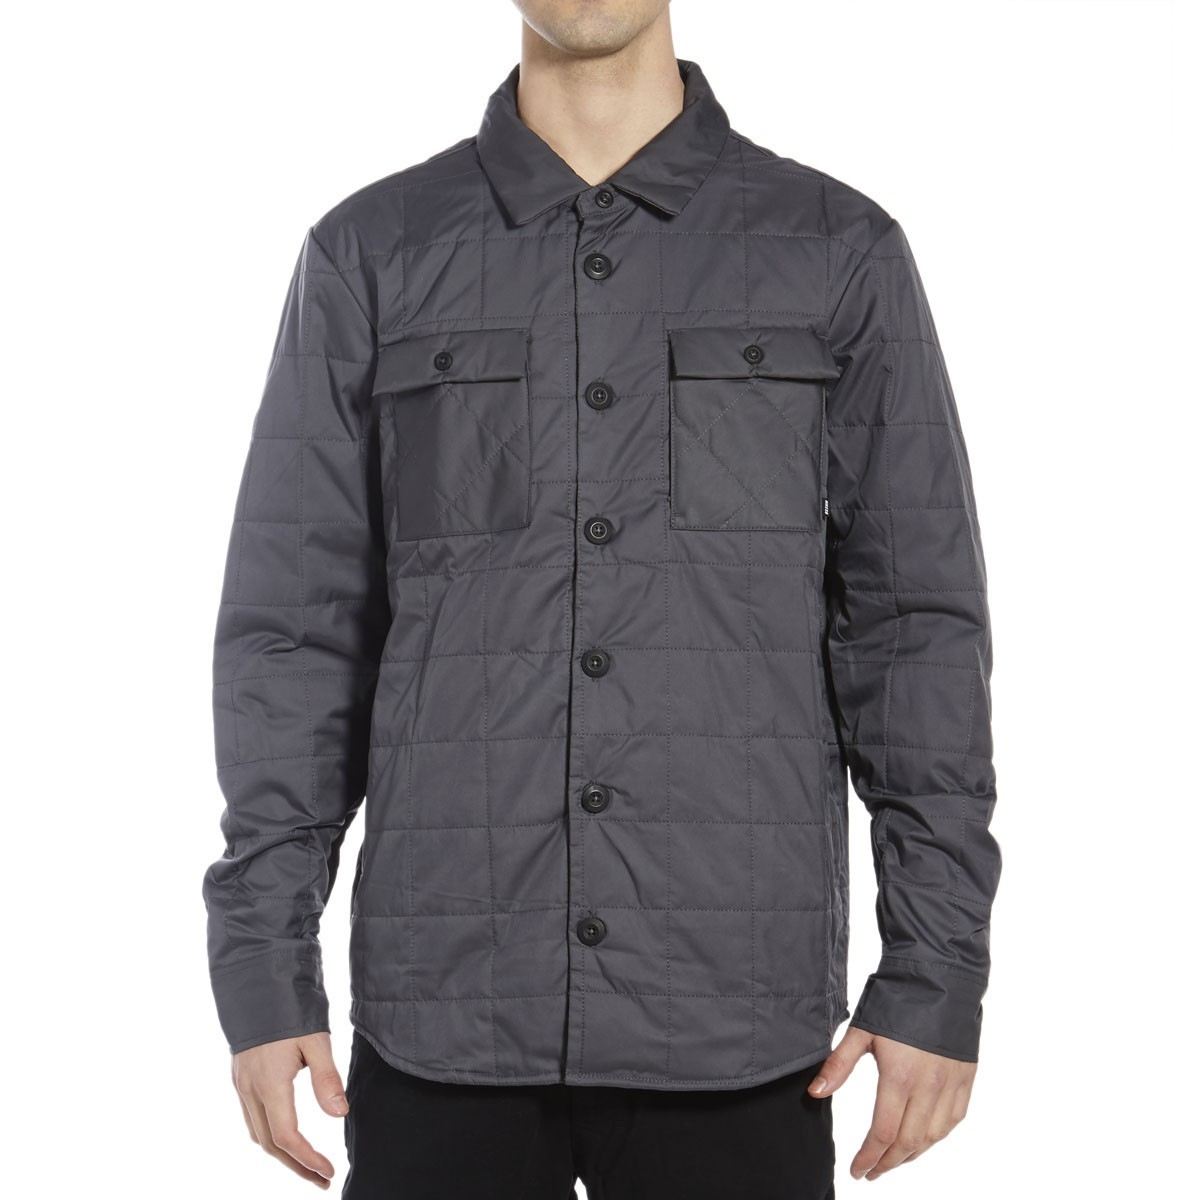 SB Holgate Winterized Long Sleeve Shirt - Dark Grey